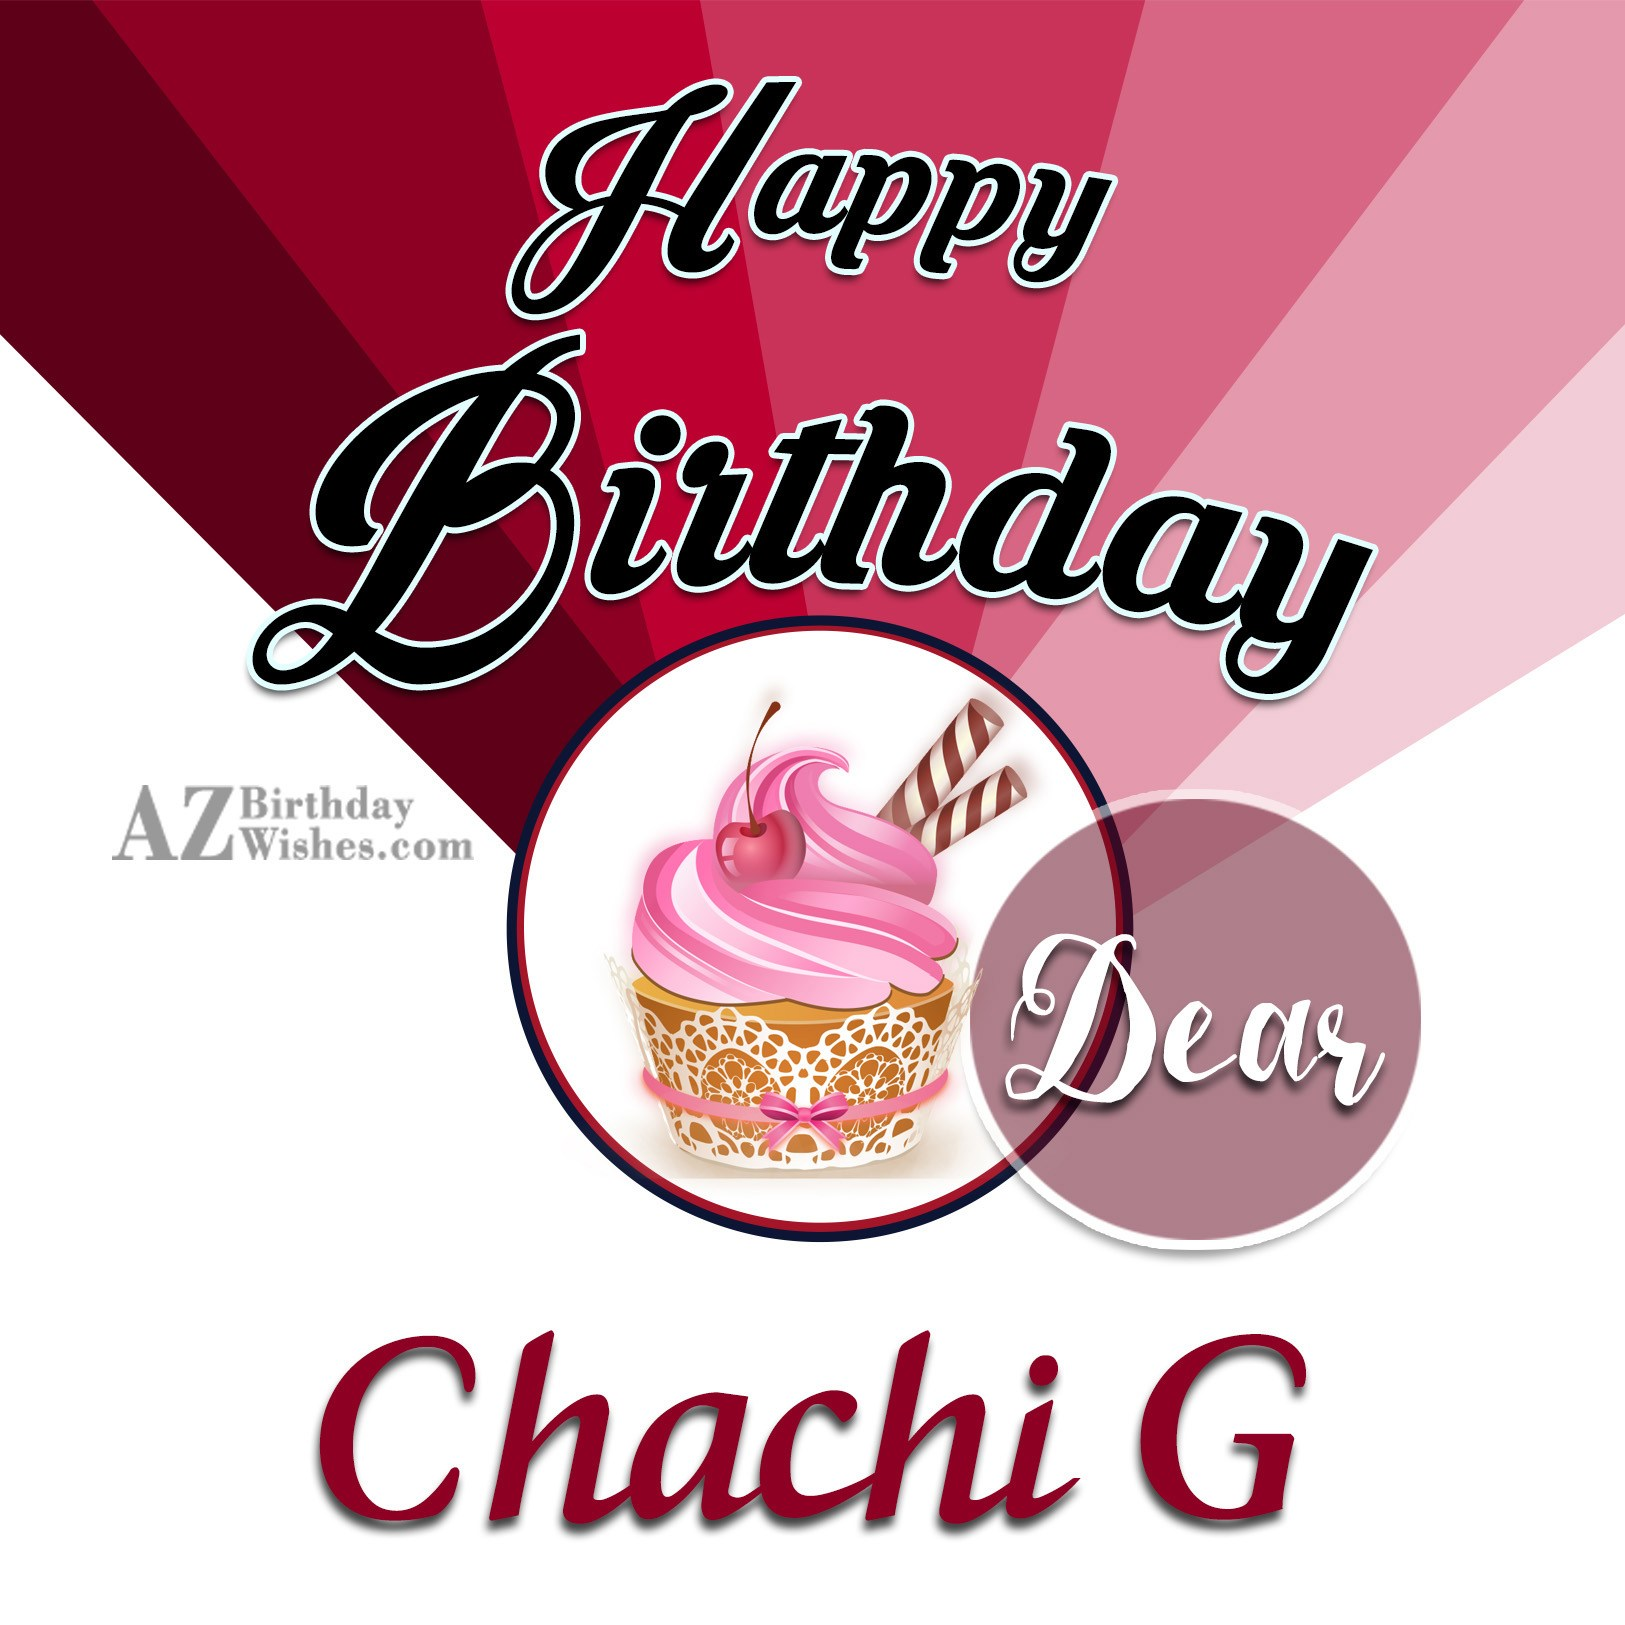 Happy Birthday Chachi G